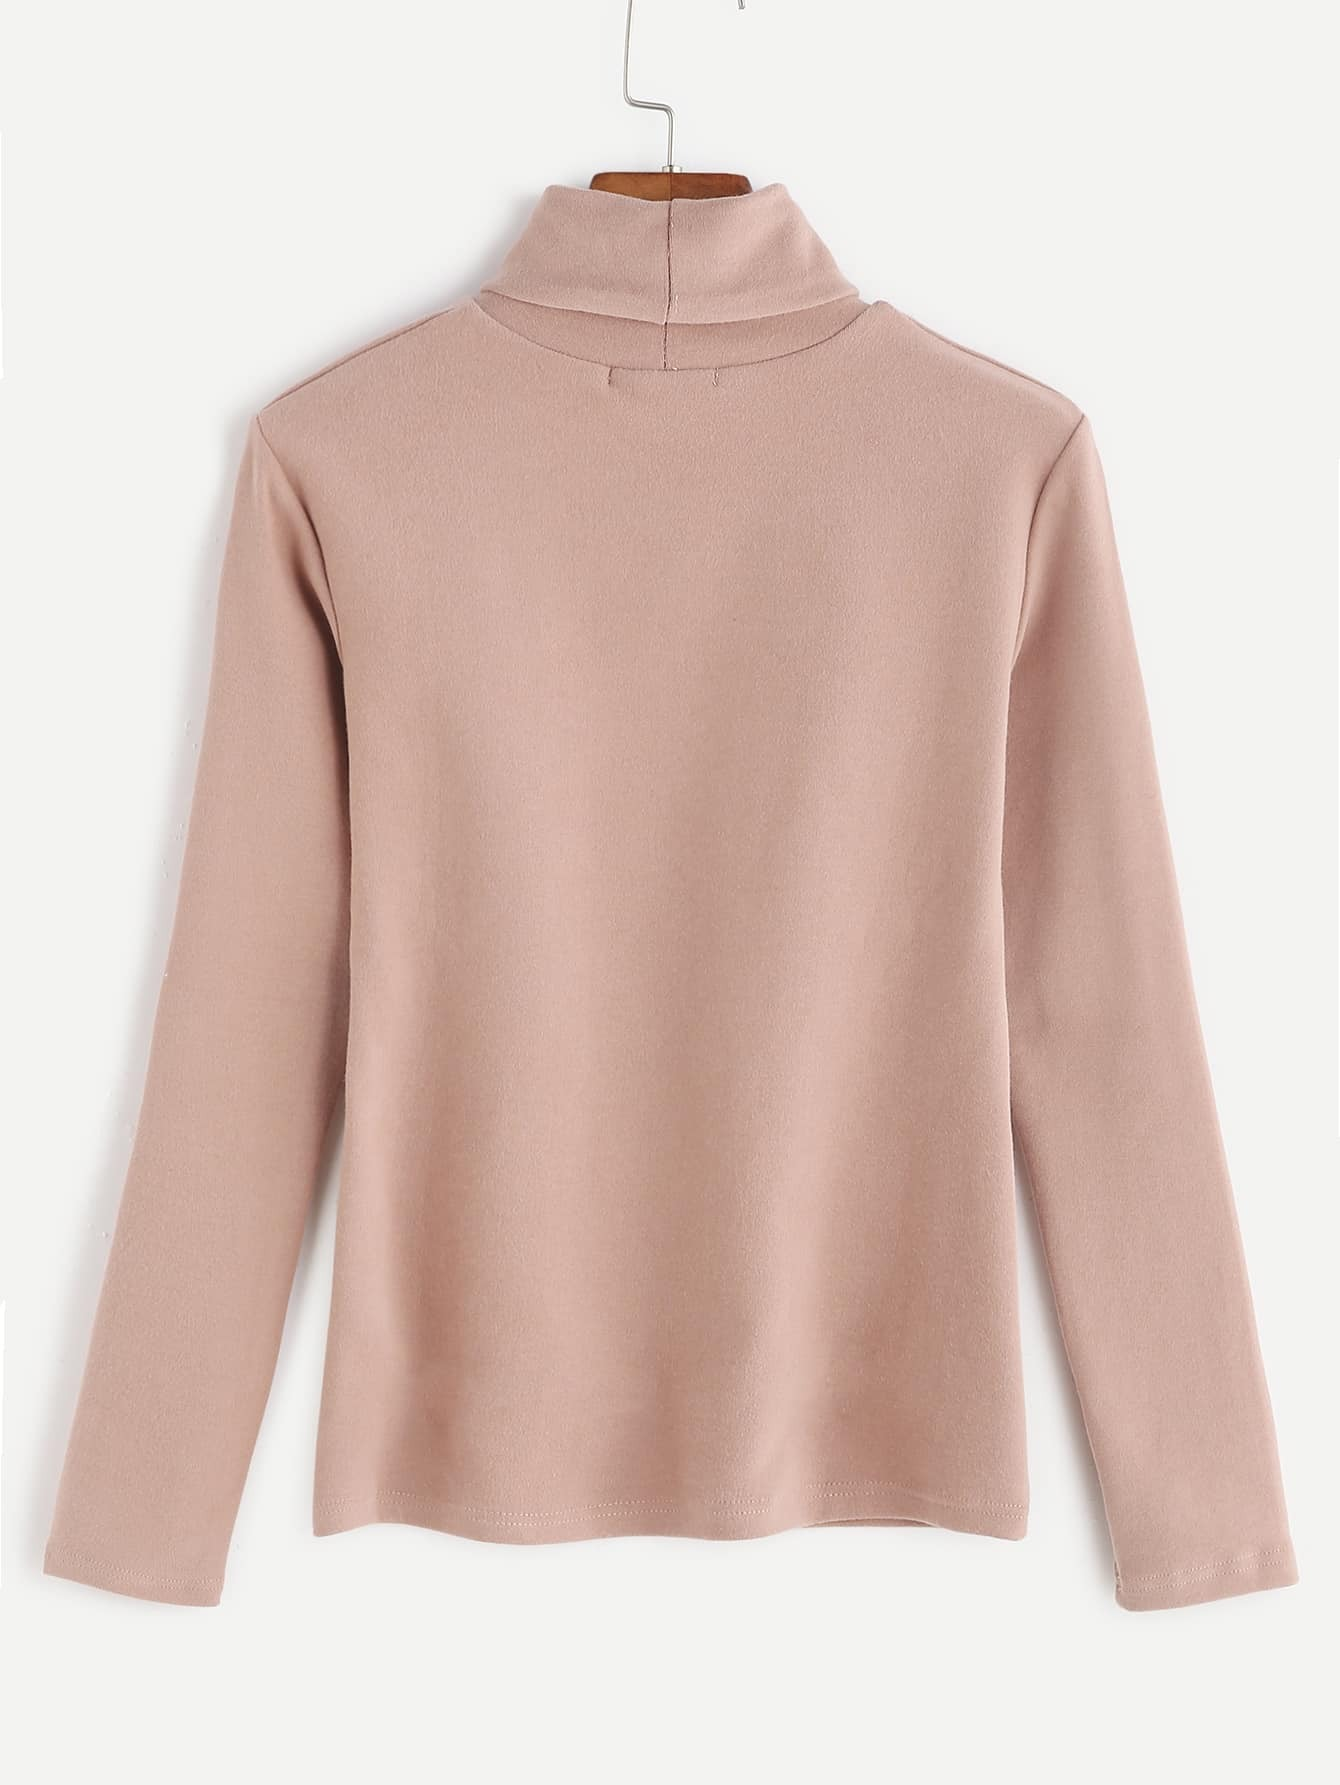 Pink turtleneck long sleeve t shirt shein sheinside for Turtleneck under t shirt